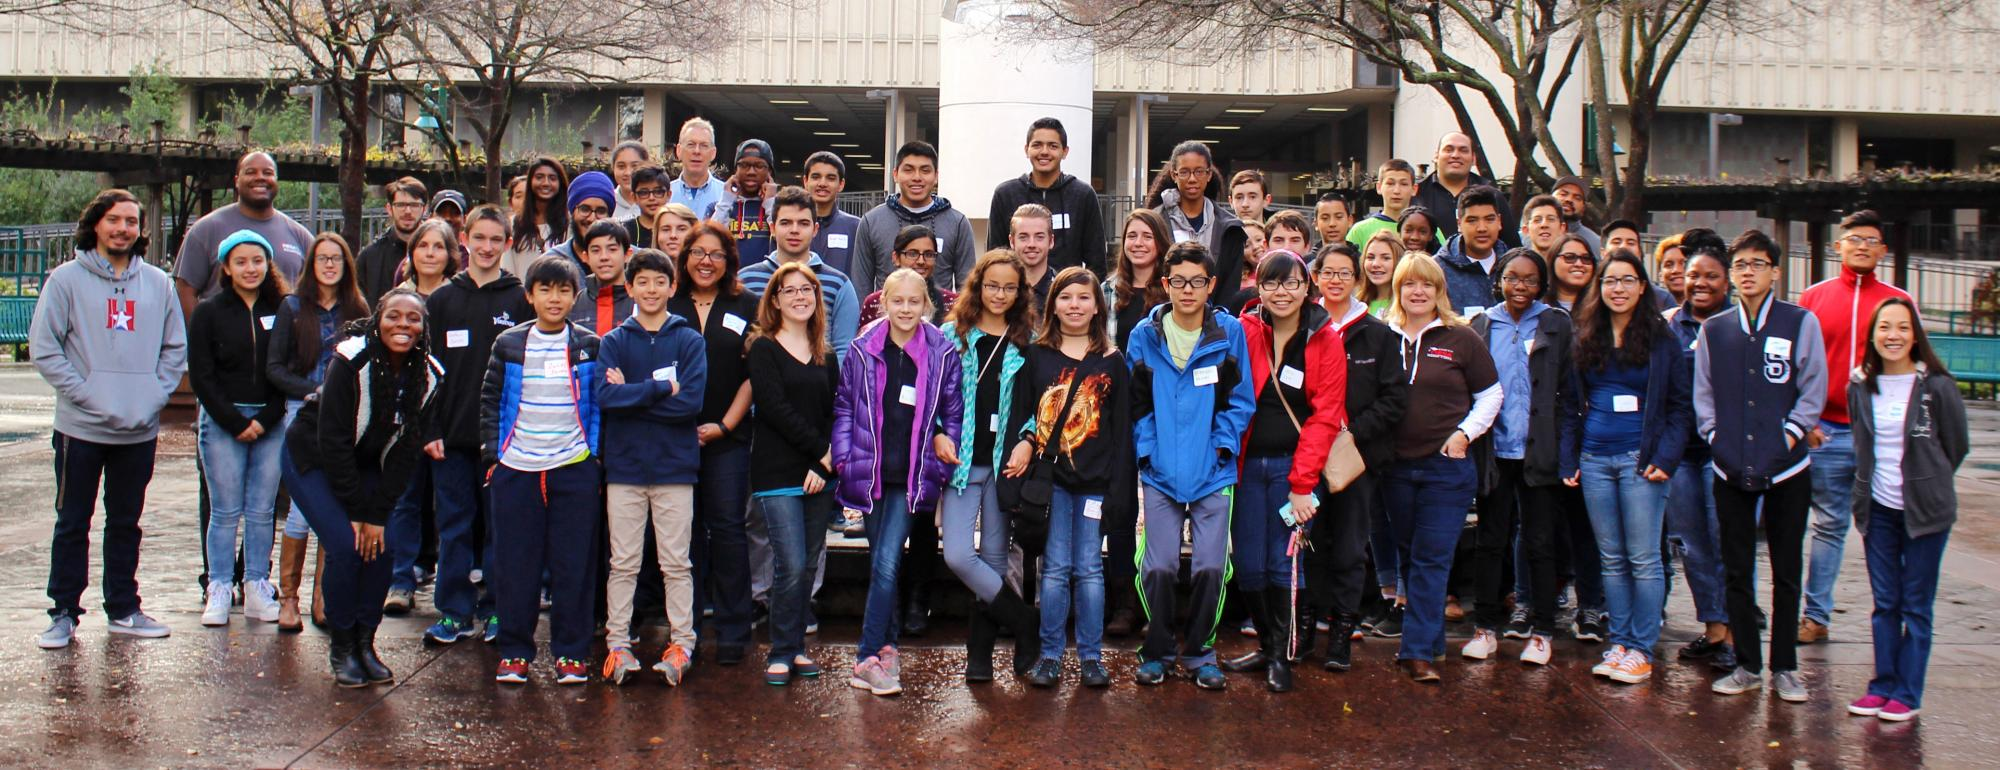 group shot of students from the MESA schools program